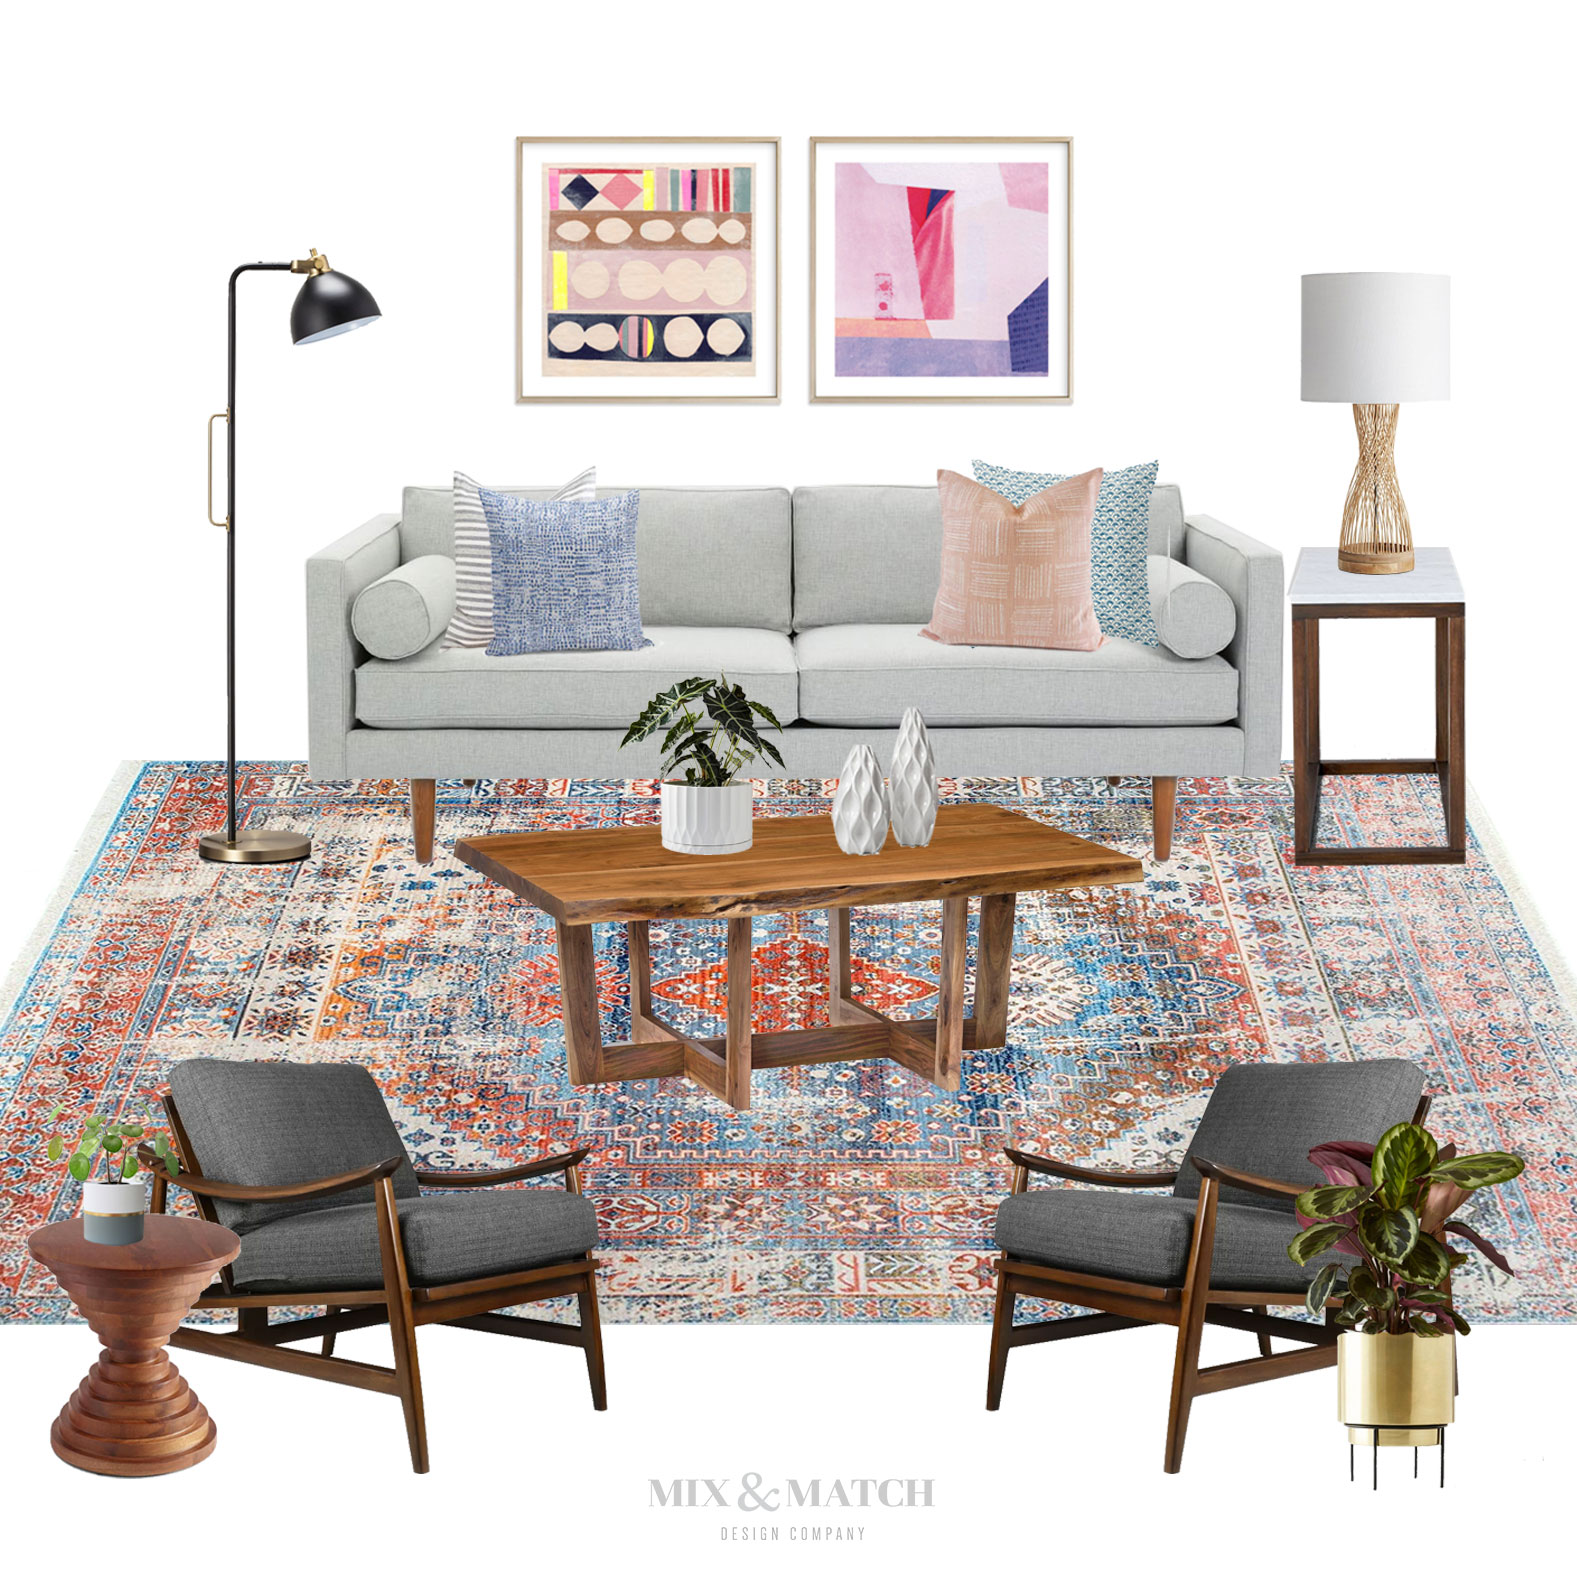 Taking a look back at the top 10 blog posts for Mix & Match Design Company of 2018! Come see what was popular in interior decorating, design tips, e-design projects, and more. One of the posts that made the list? The Get the Look series! See how you can get this mid-century modern eclectic look for your own living room.